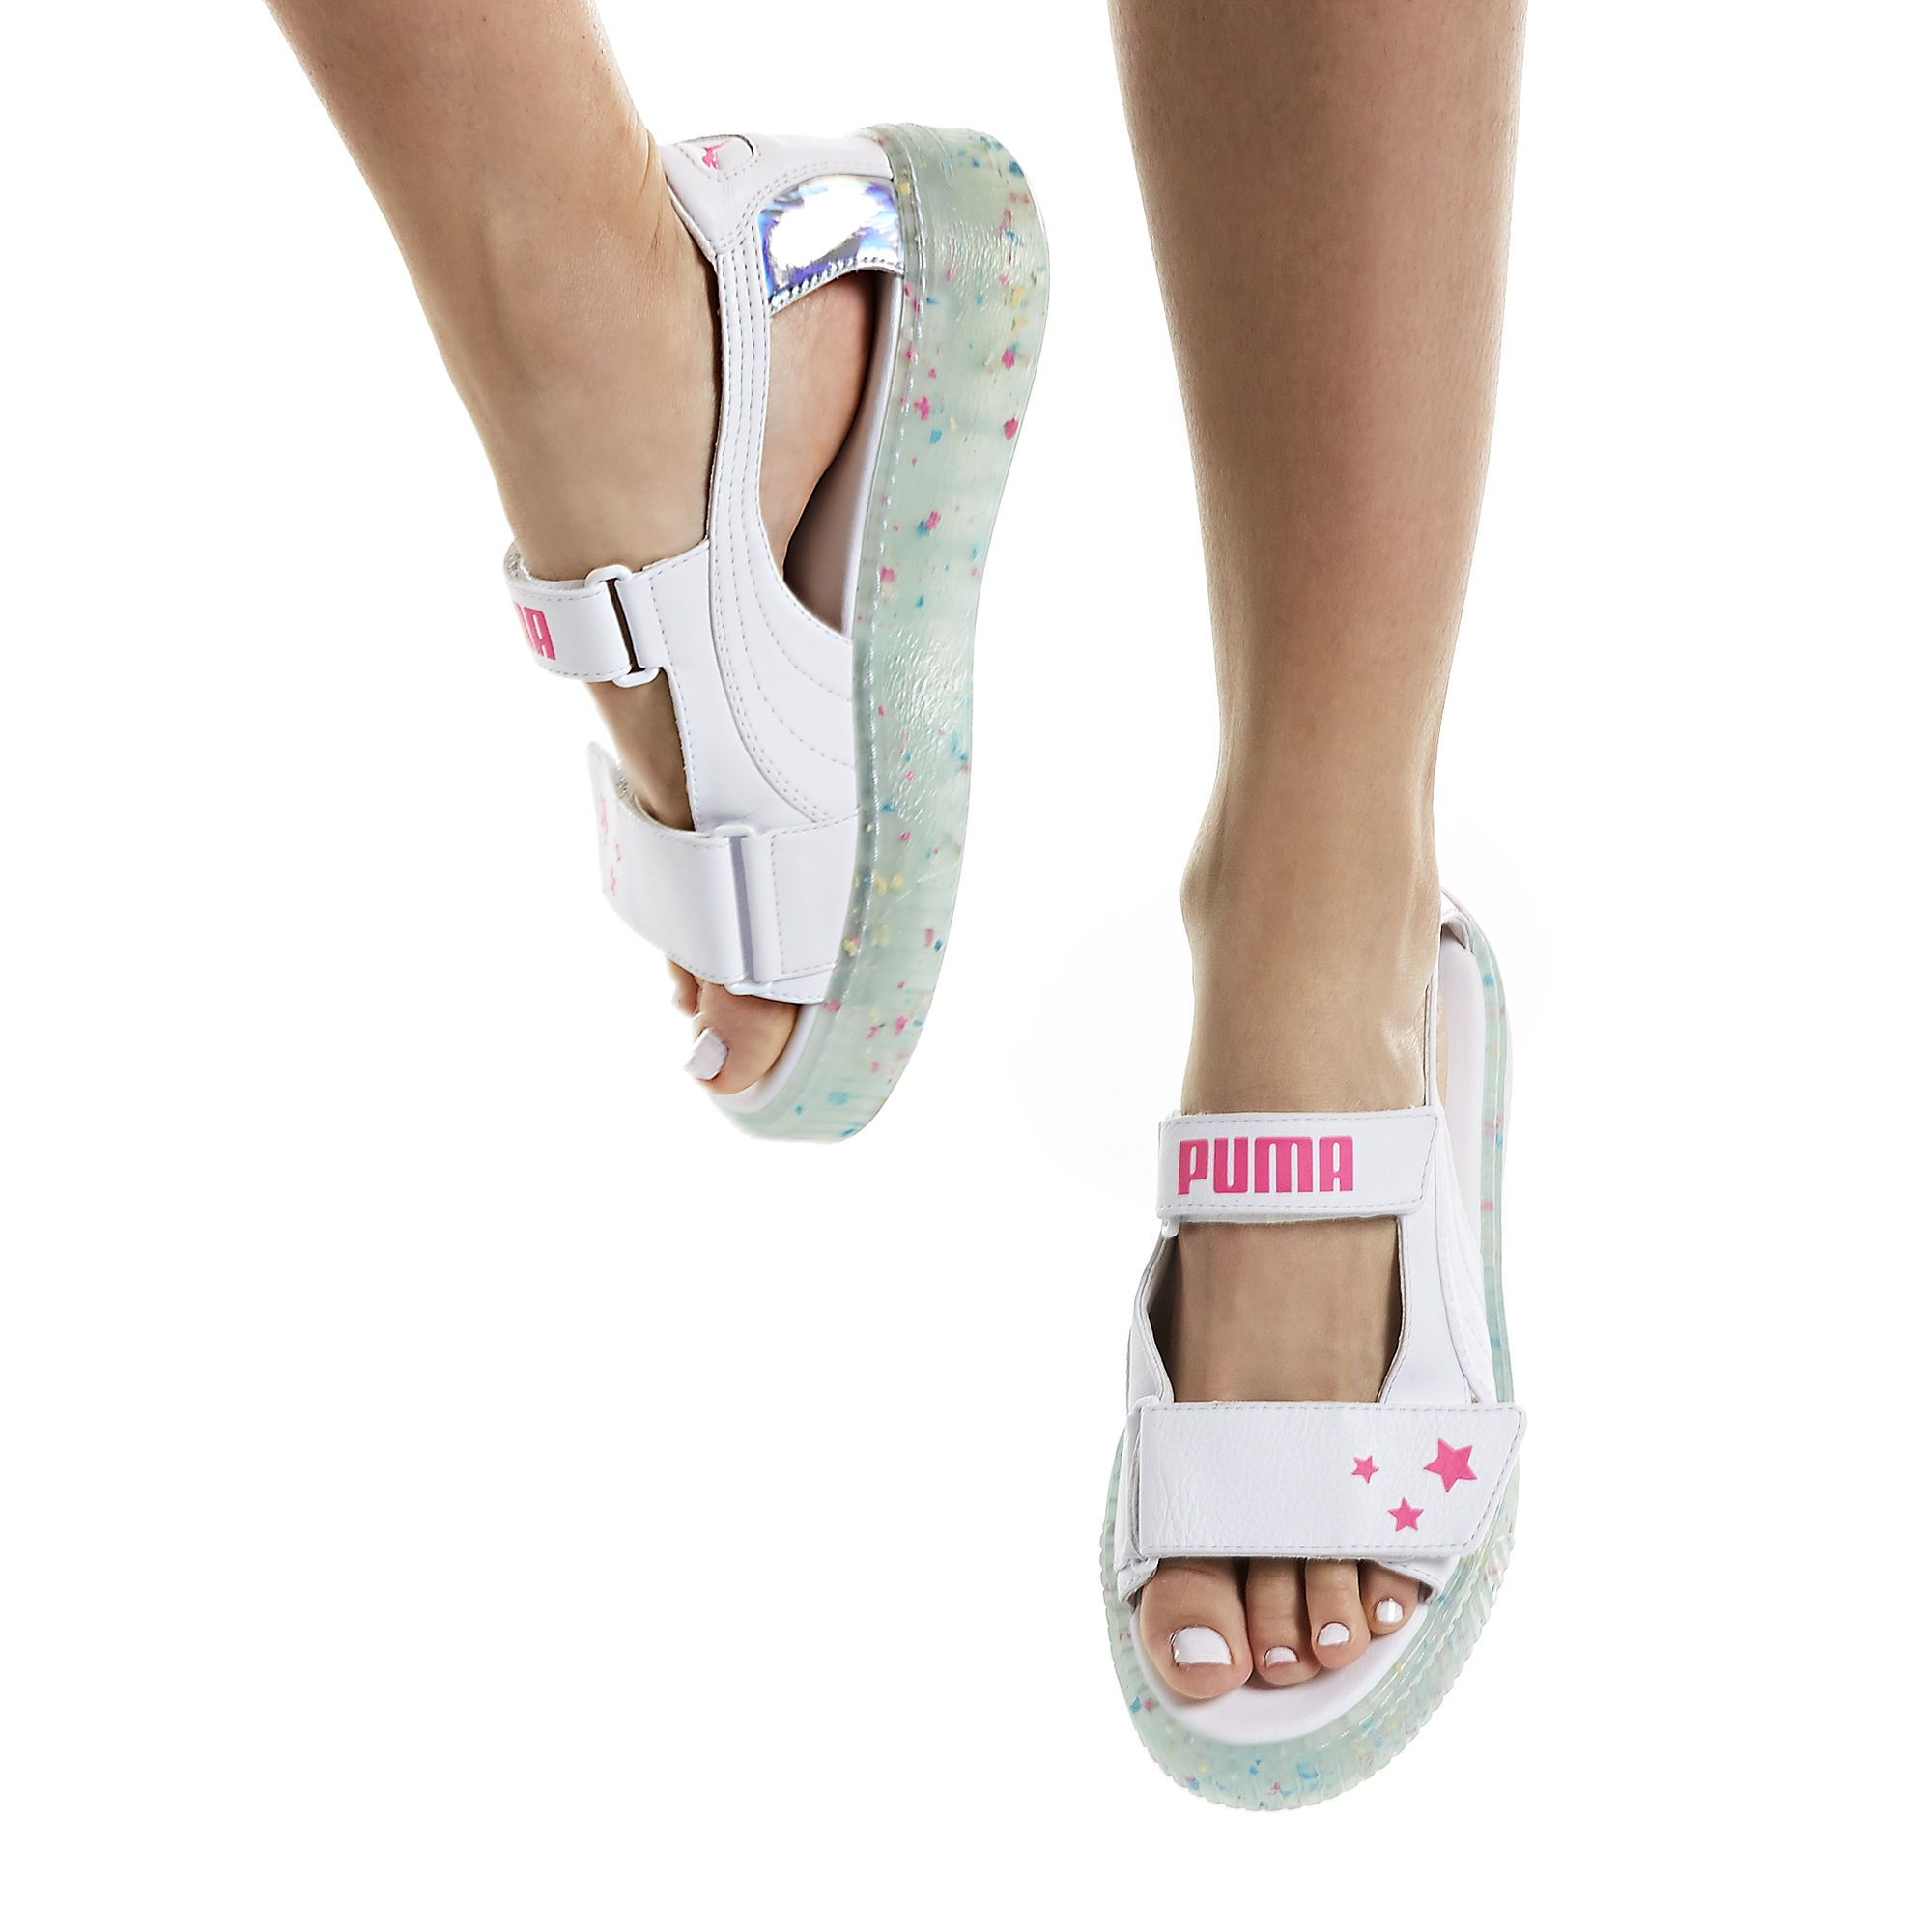 09519690591 PUMA x SOPHIA WEBSTER Women s Platform Sandals